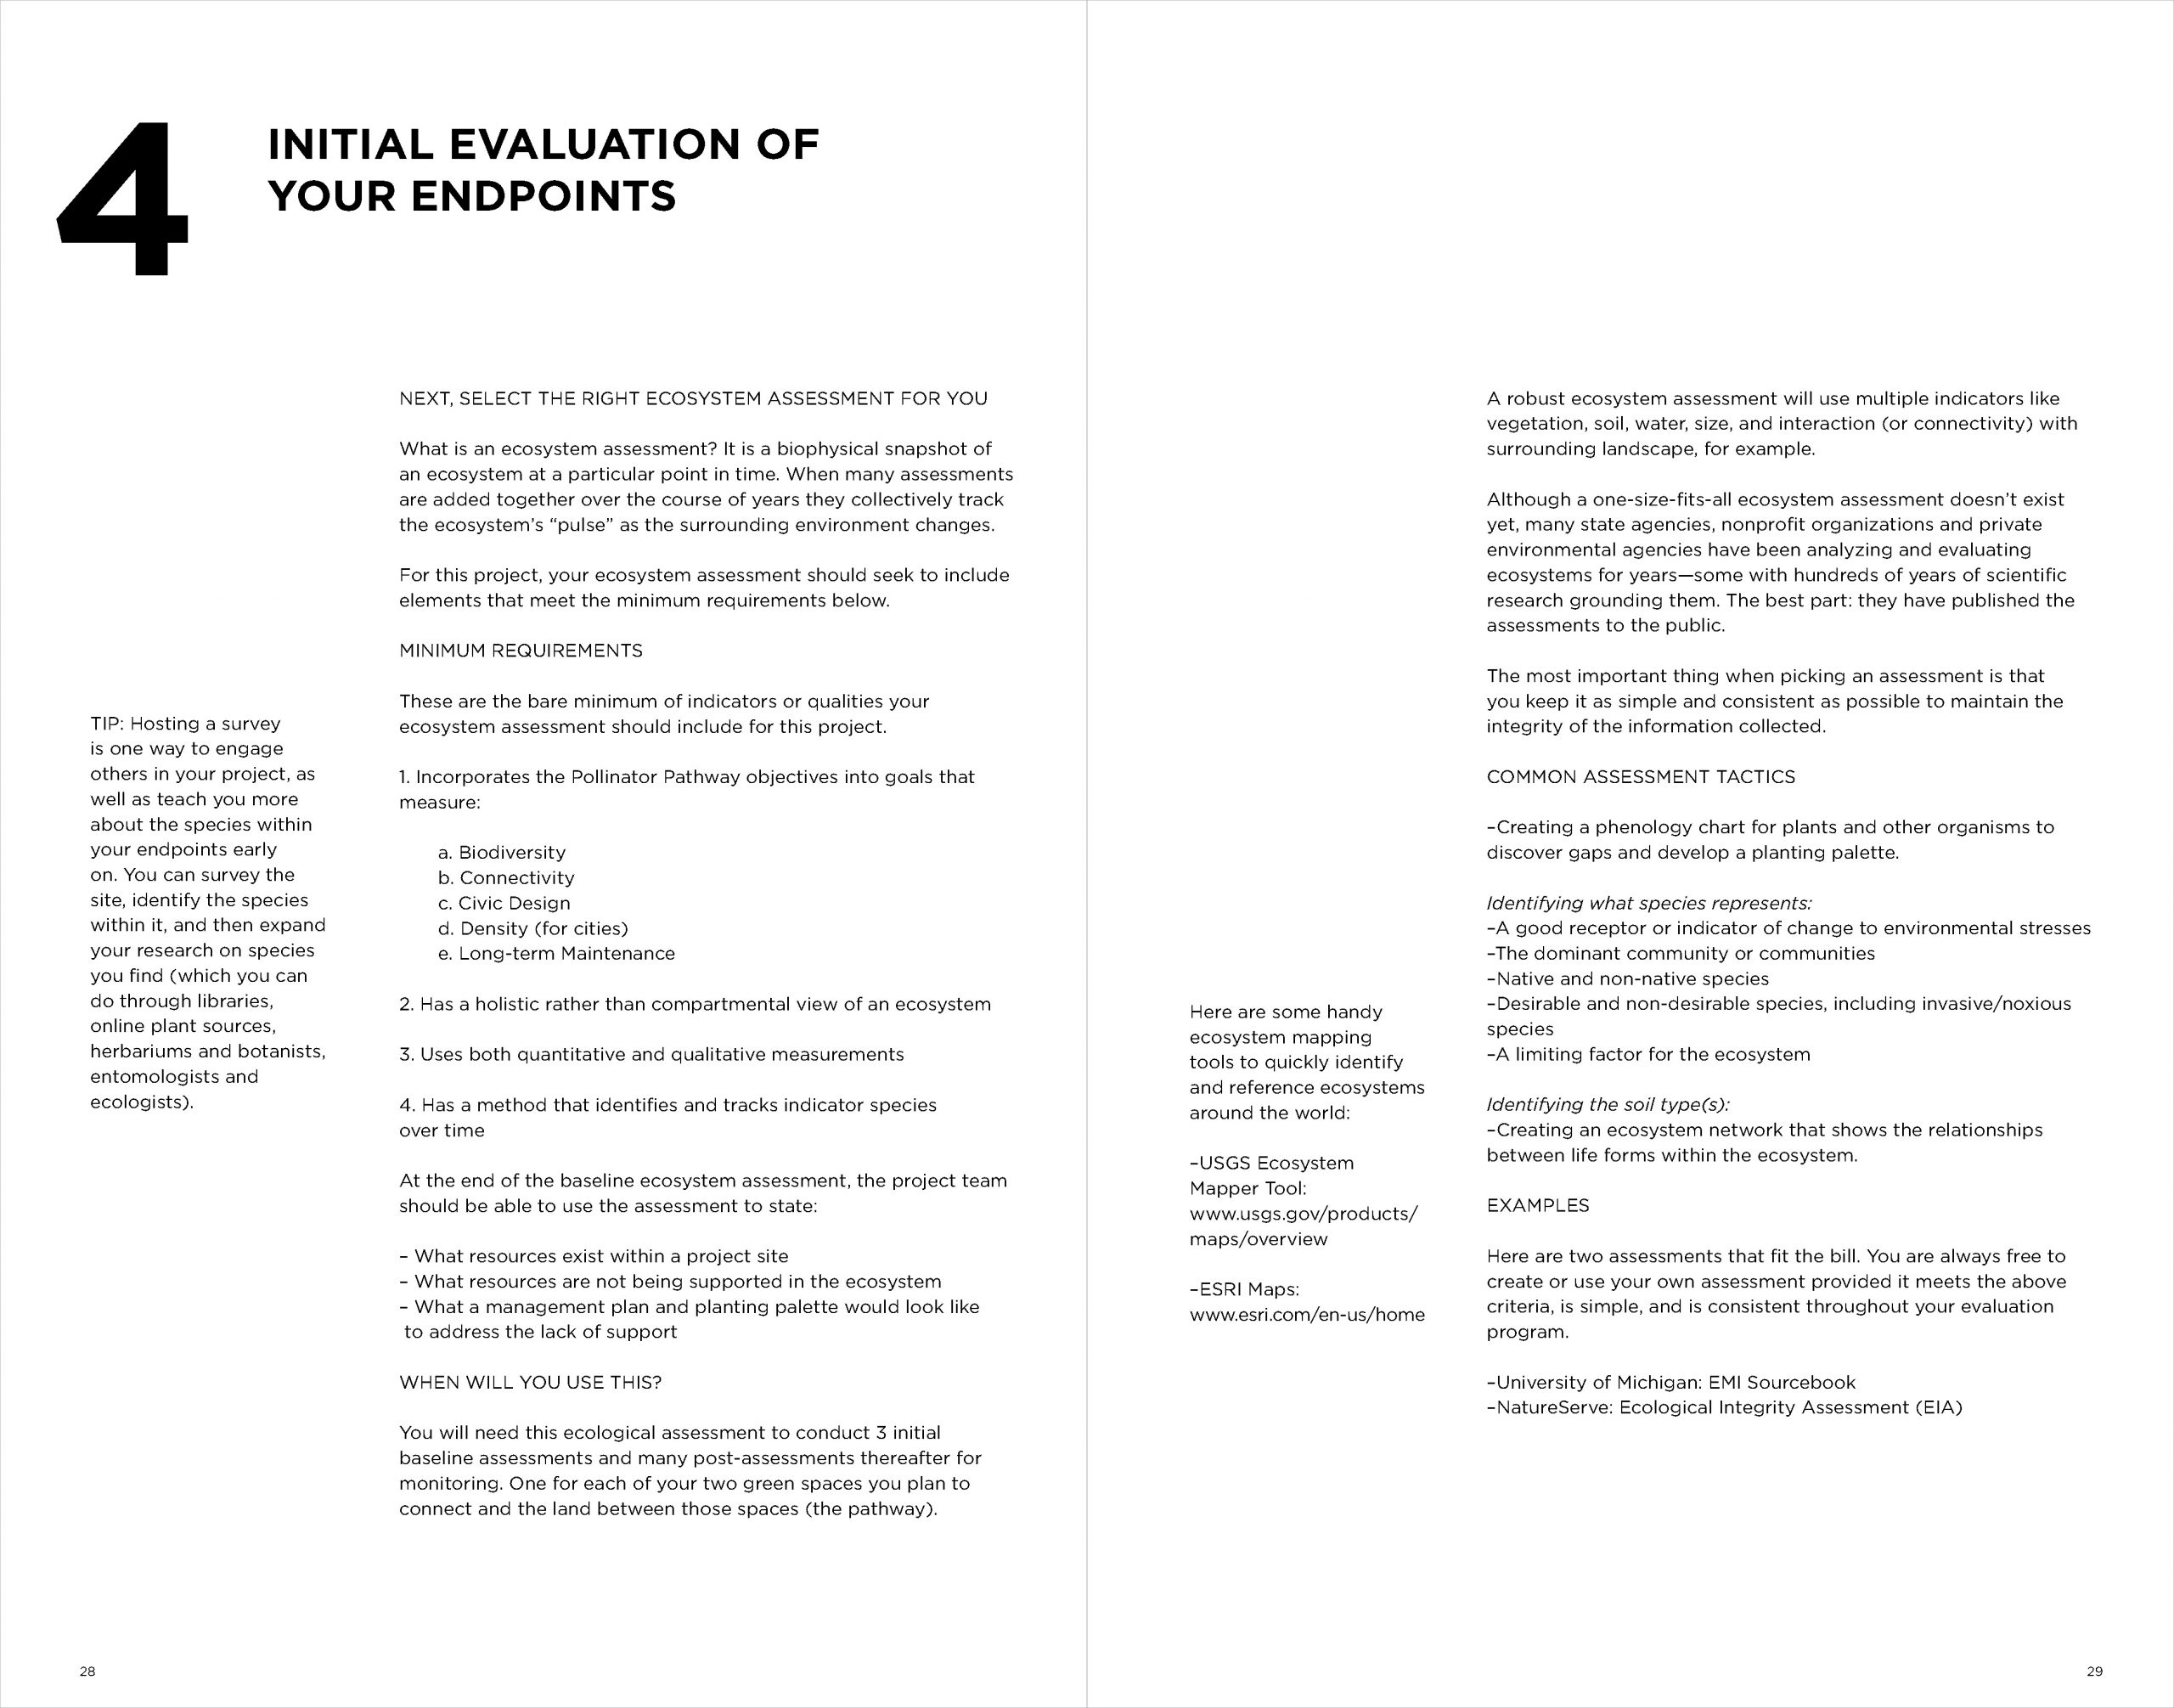 POLLINATOR-PATHWAY-TOOLKIT_Page_17